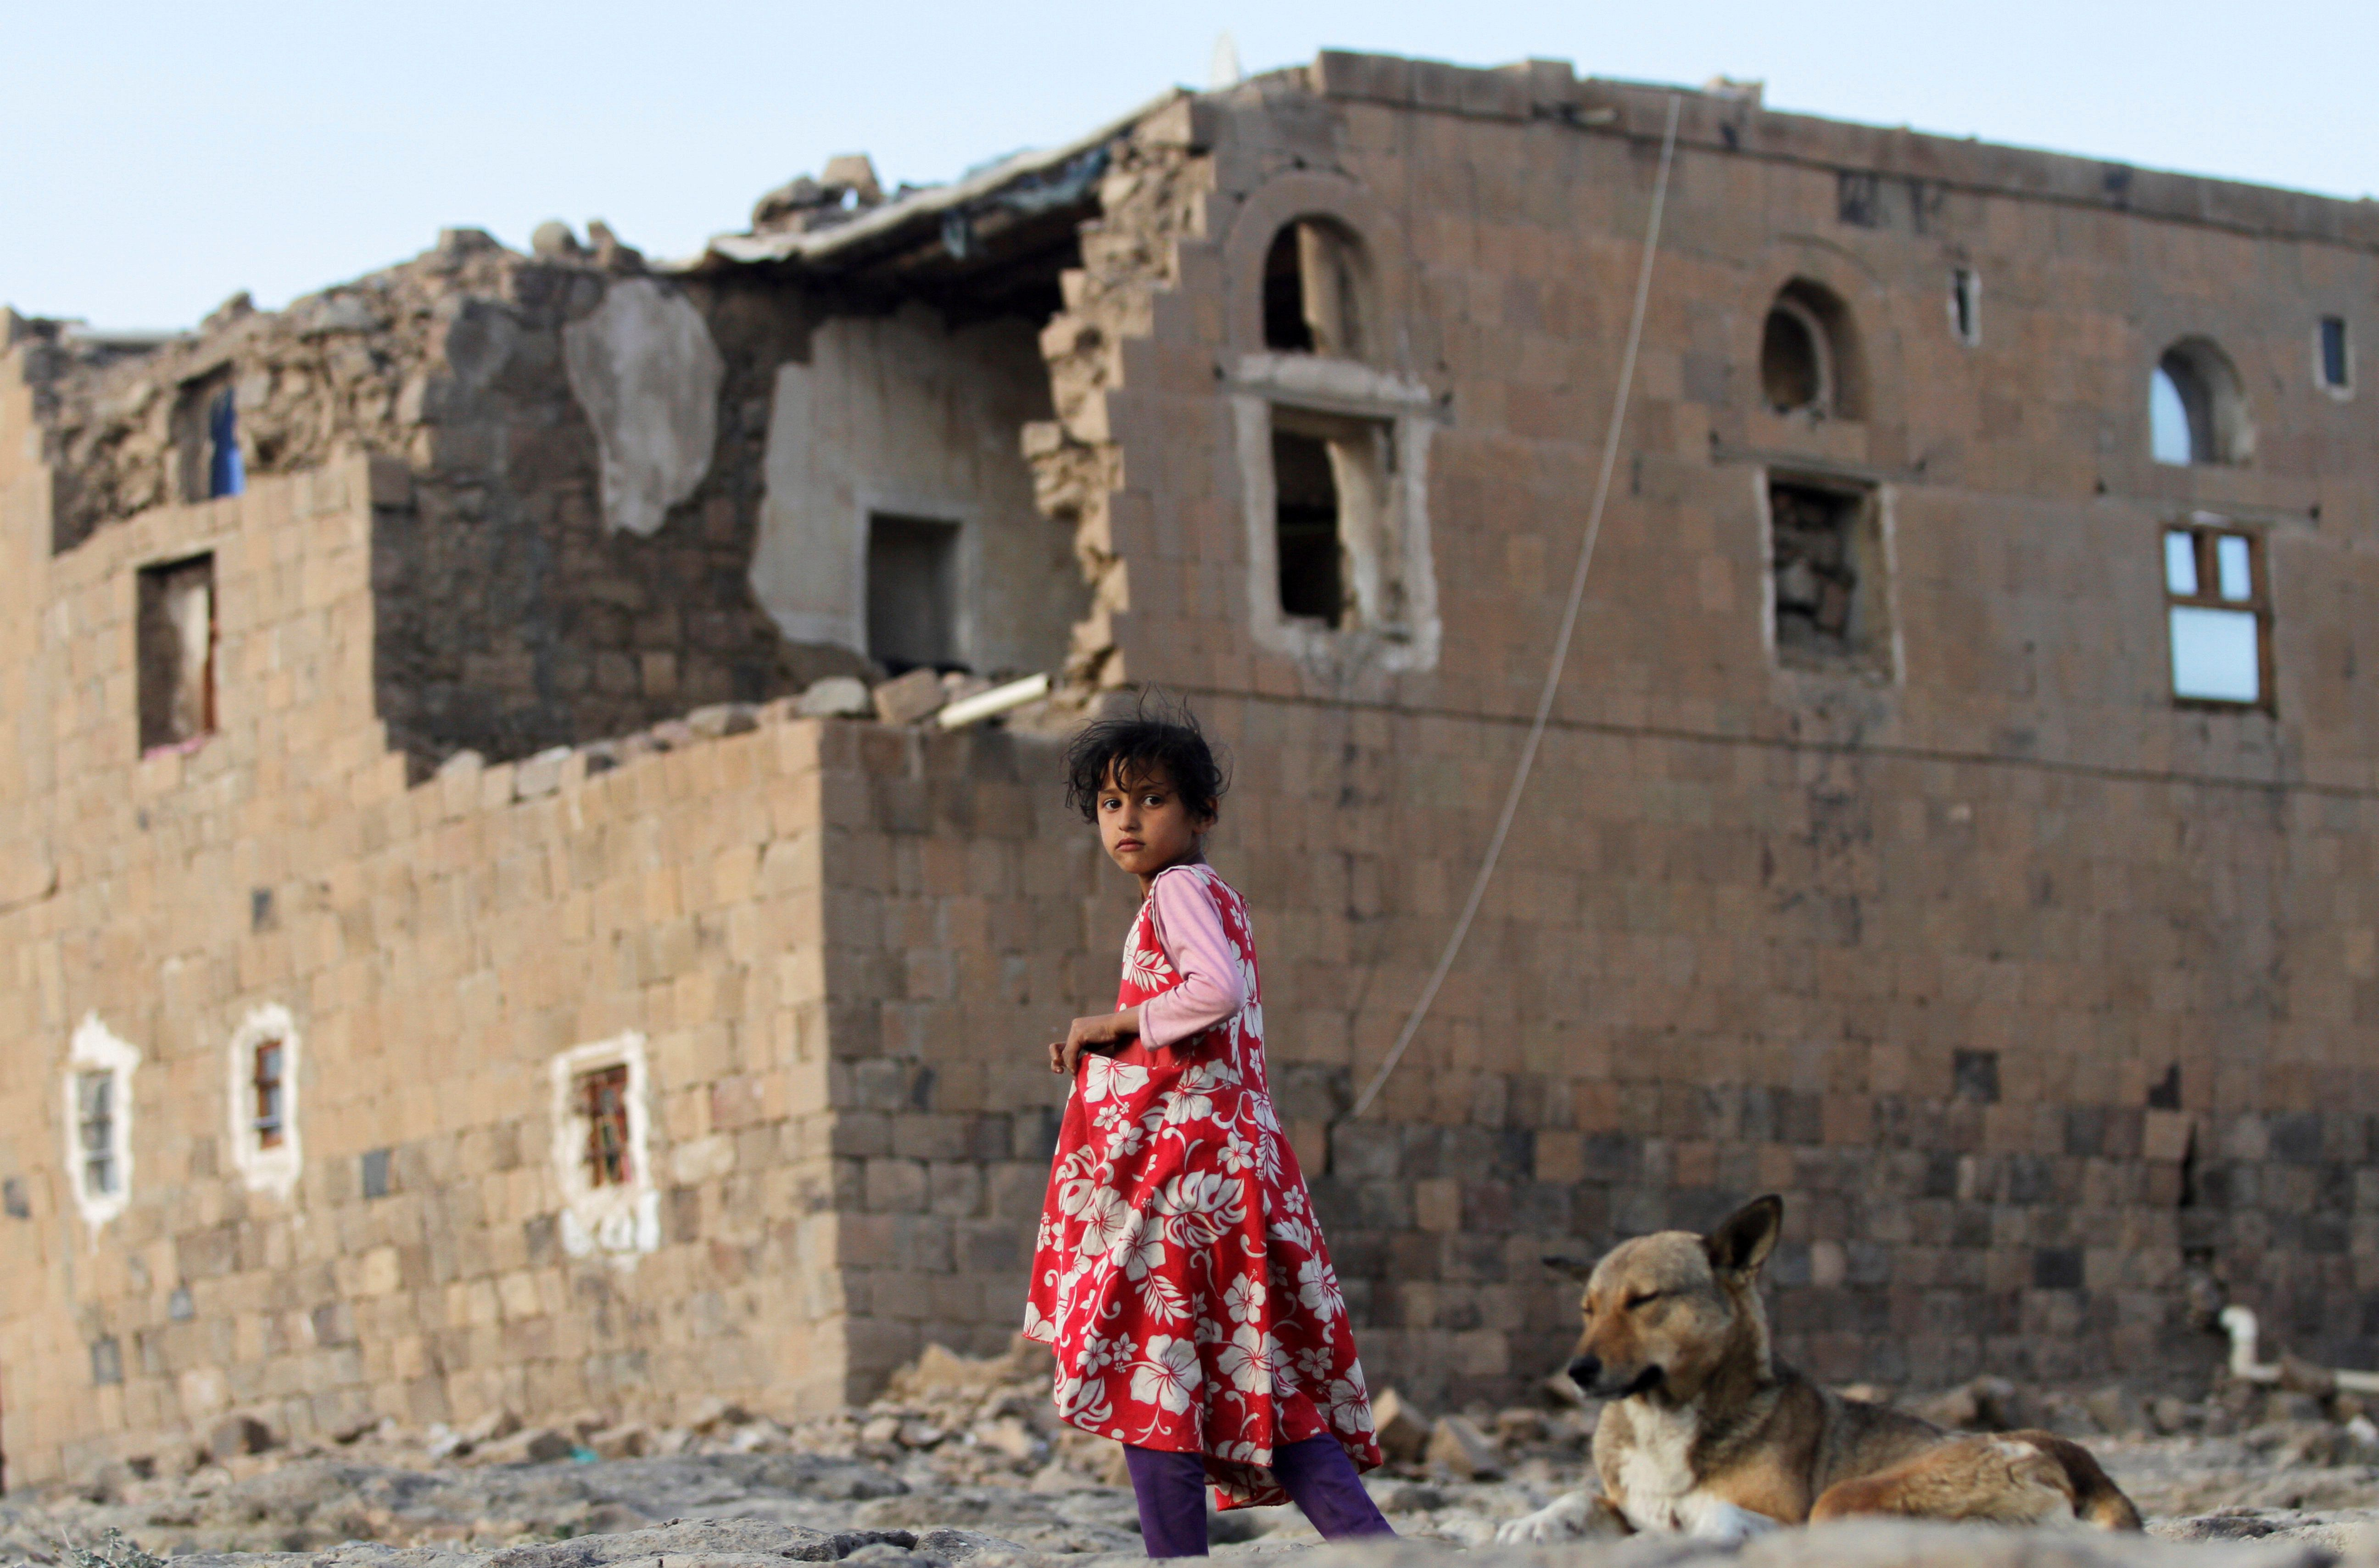 A girl walks near her house destroyed in an airstrike carried out by the Saudi-led coalition in Faj Attan village, Sanaa, Yem